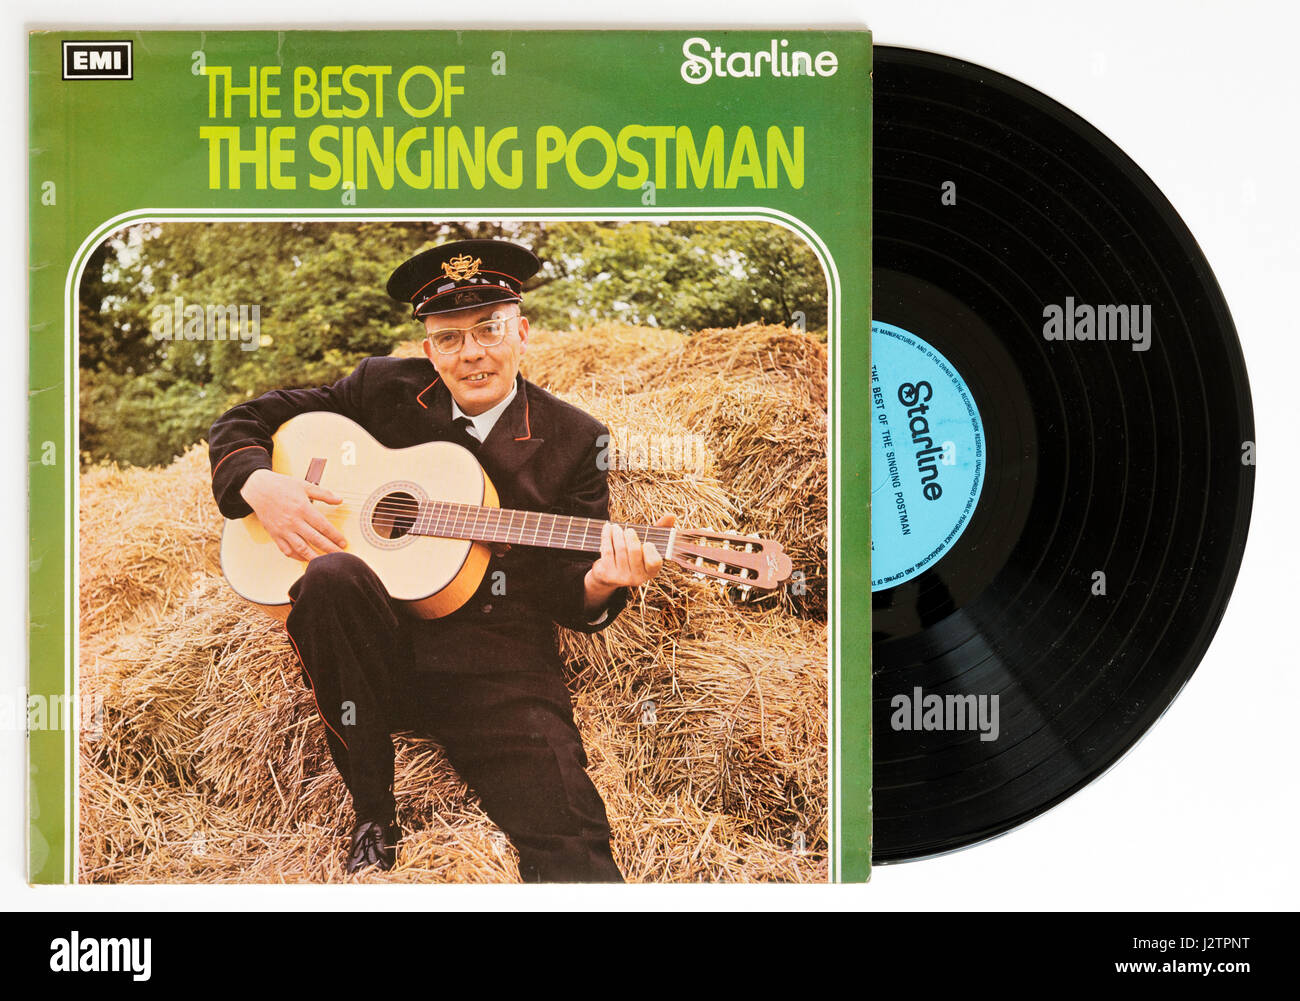 The Singing Postman album on vinyl - Stock Image